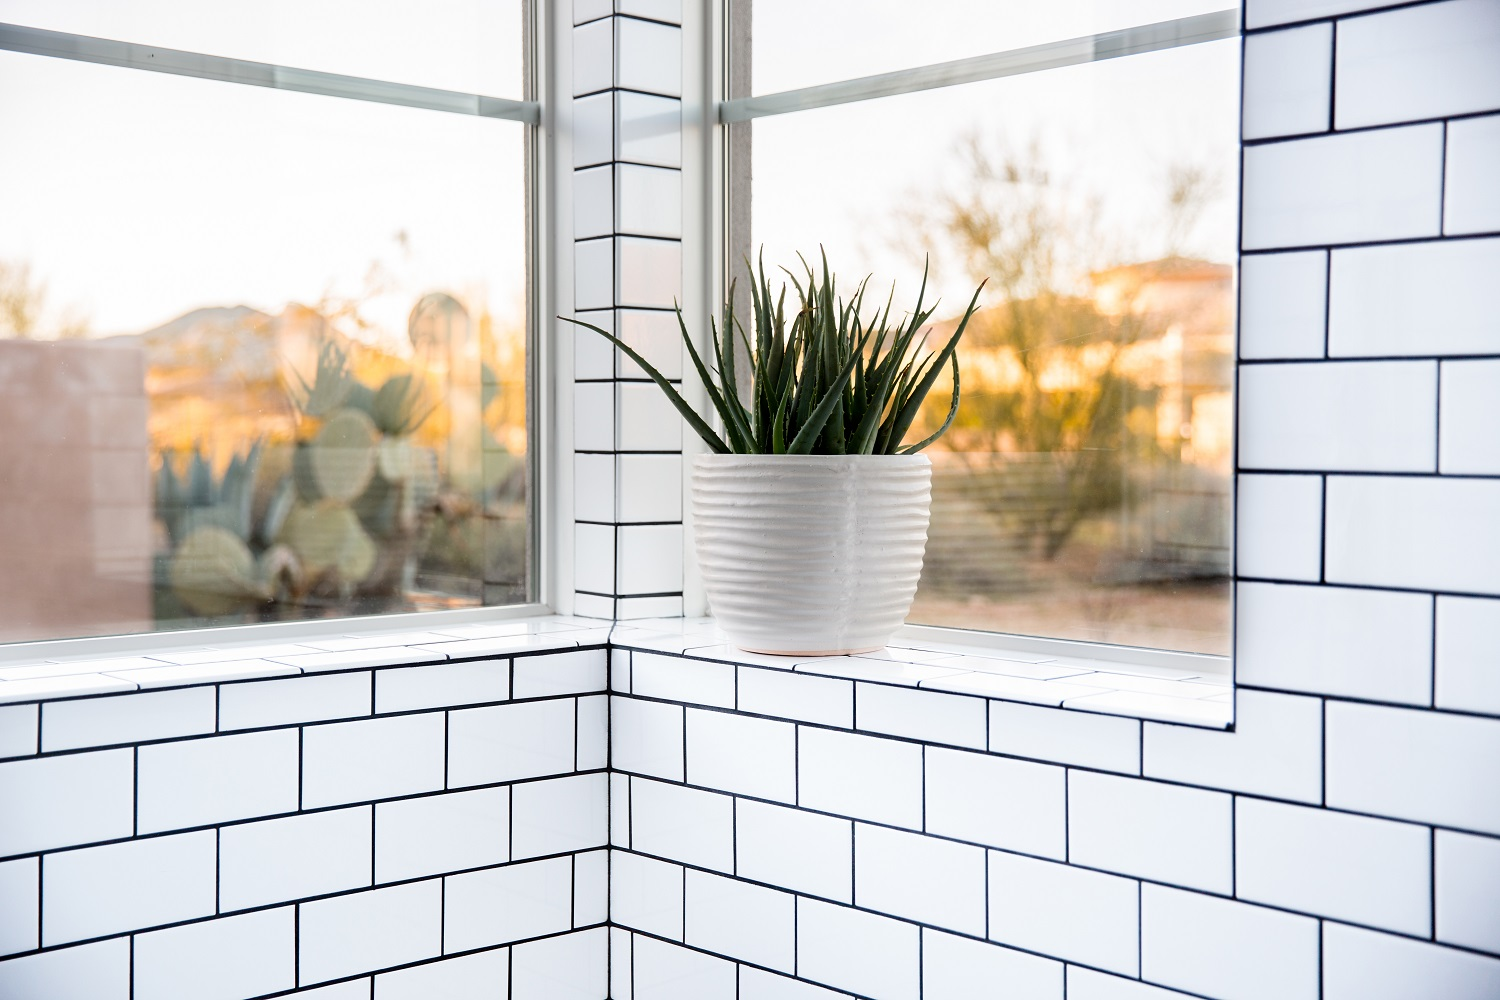 Add natural light to dark corners with new windows. Simonton vinyl windows allow natural light to flood your home helping your home save energy.